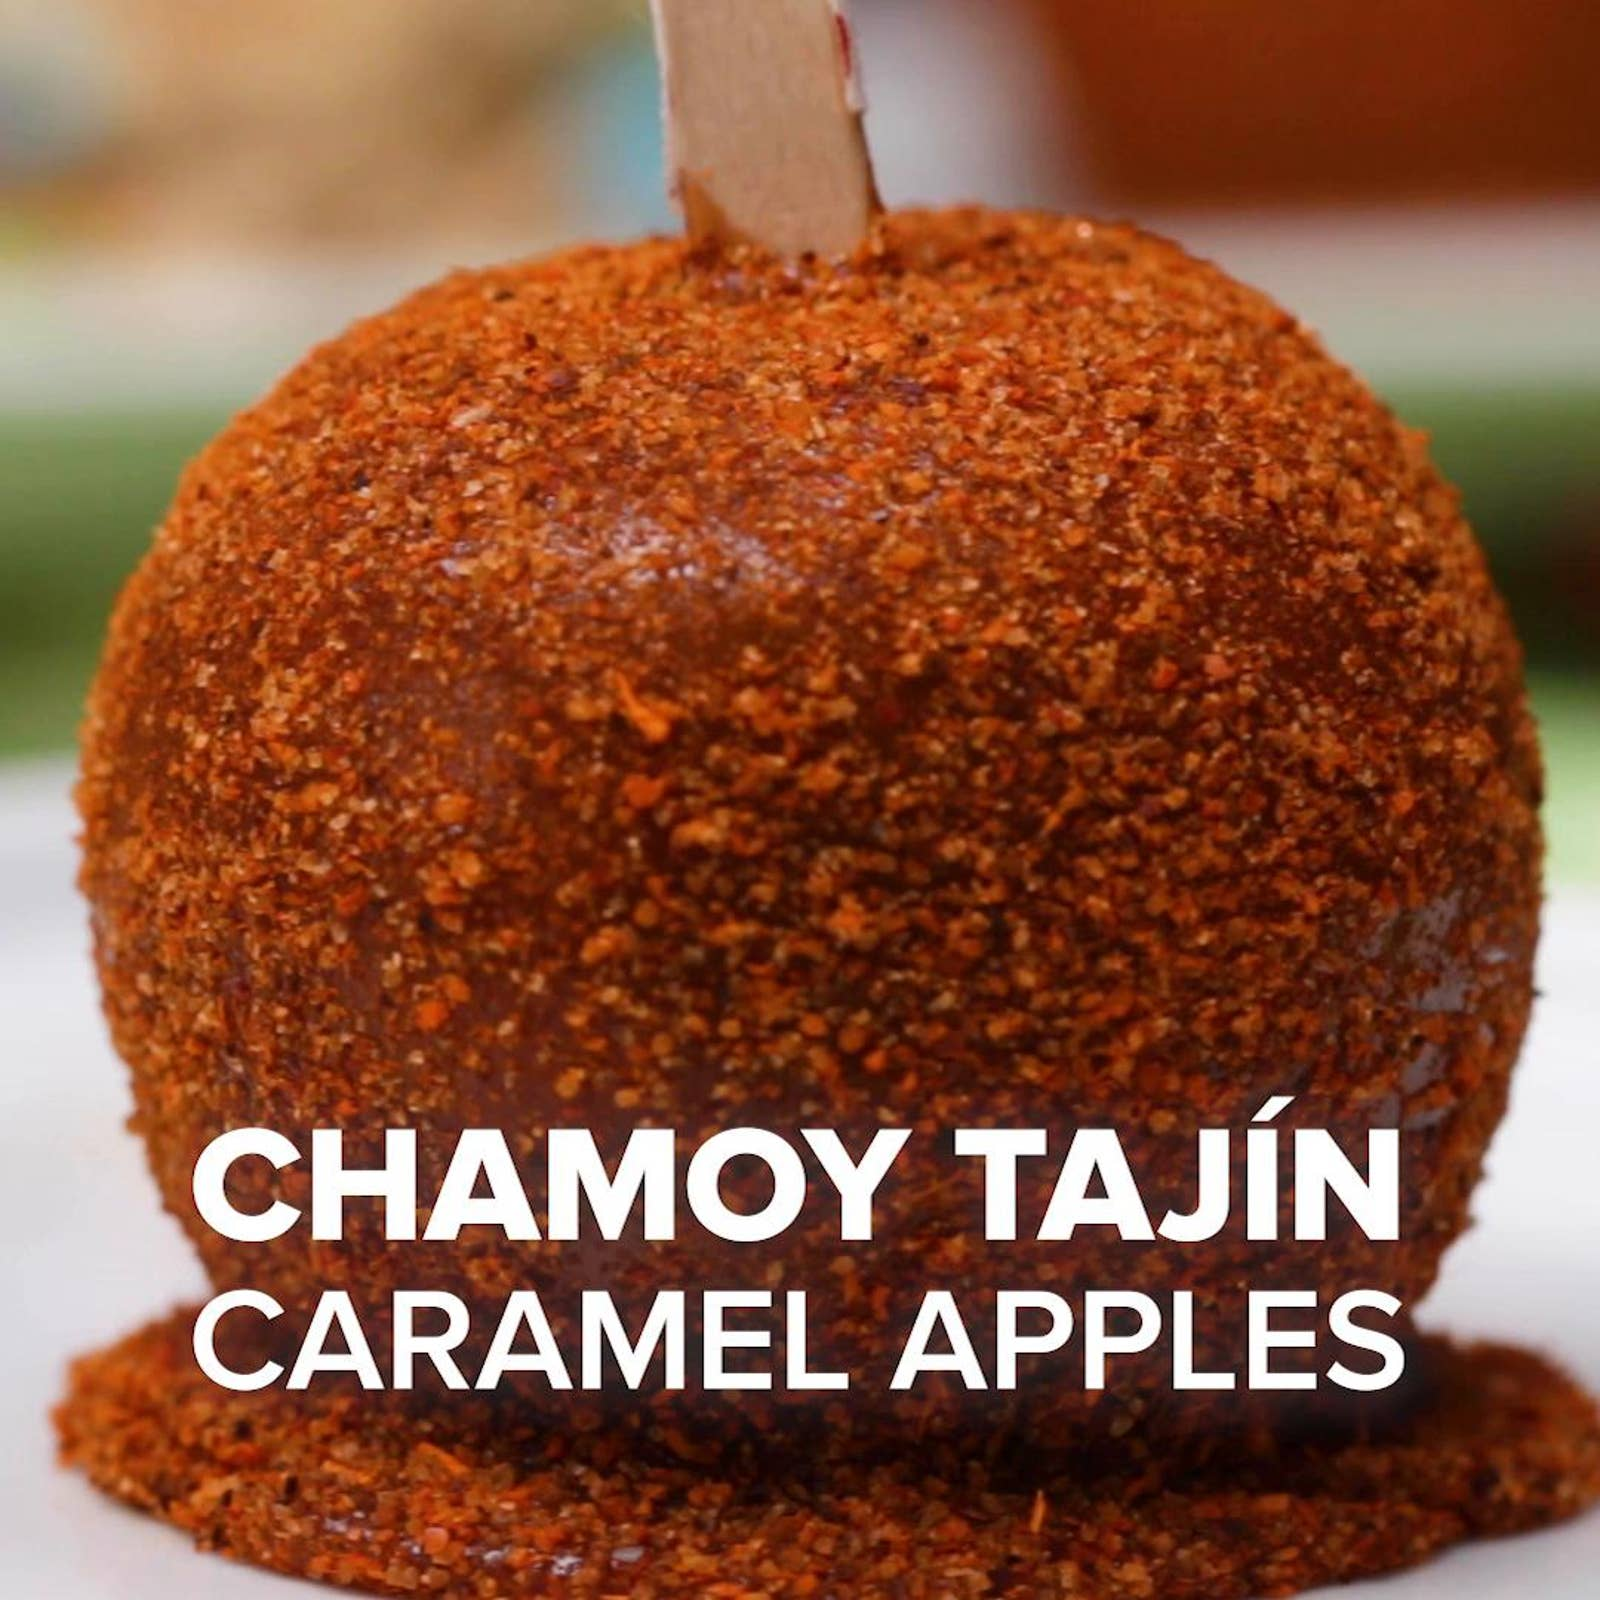 Chamoy Tajin Caramel Apples Recipe By Tasty